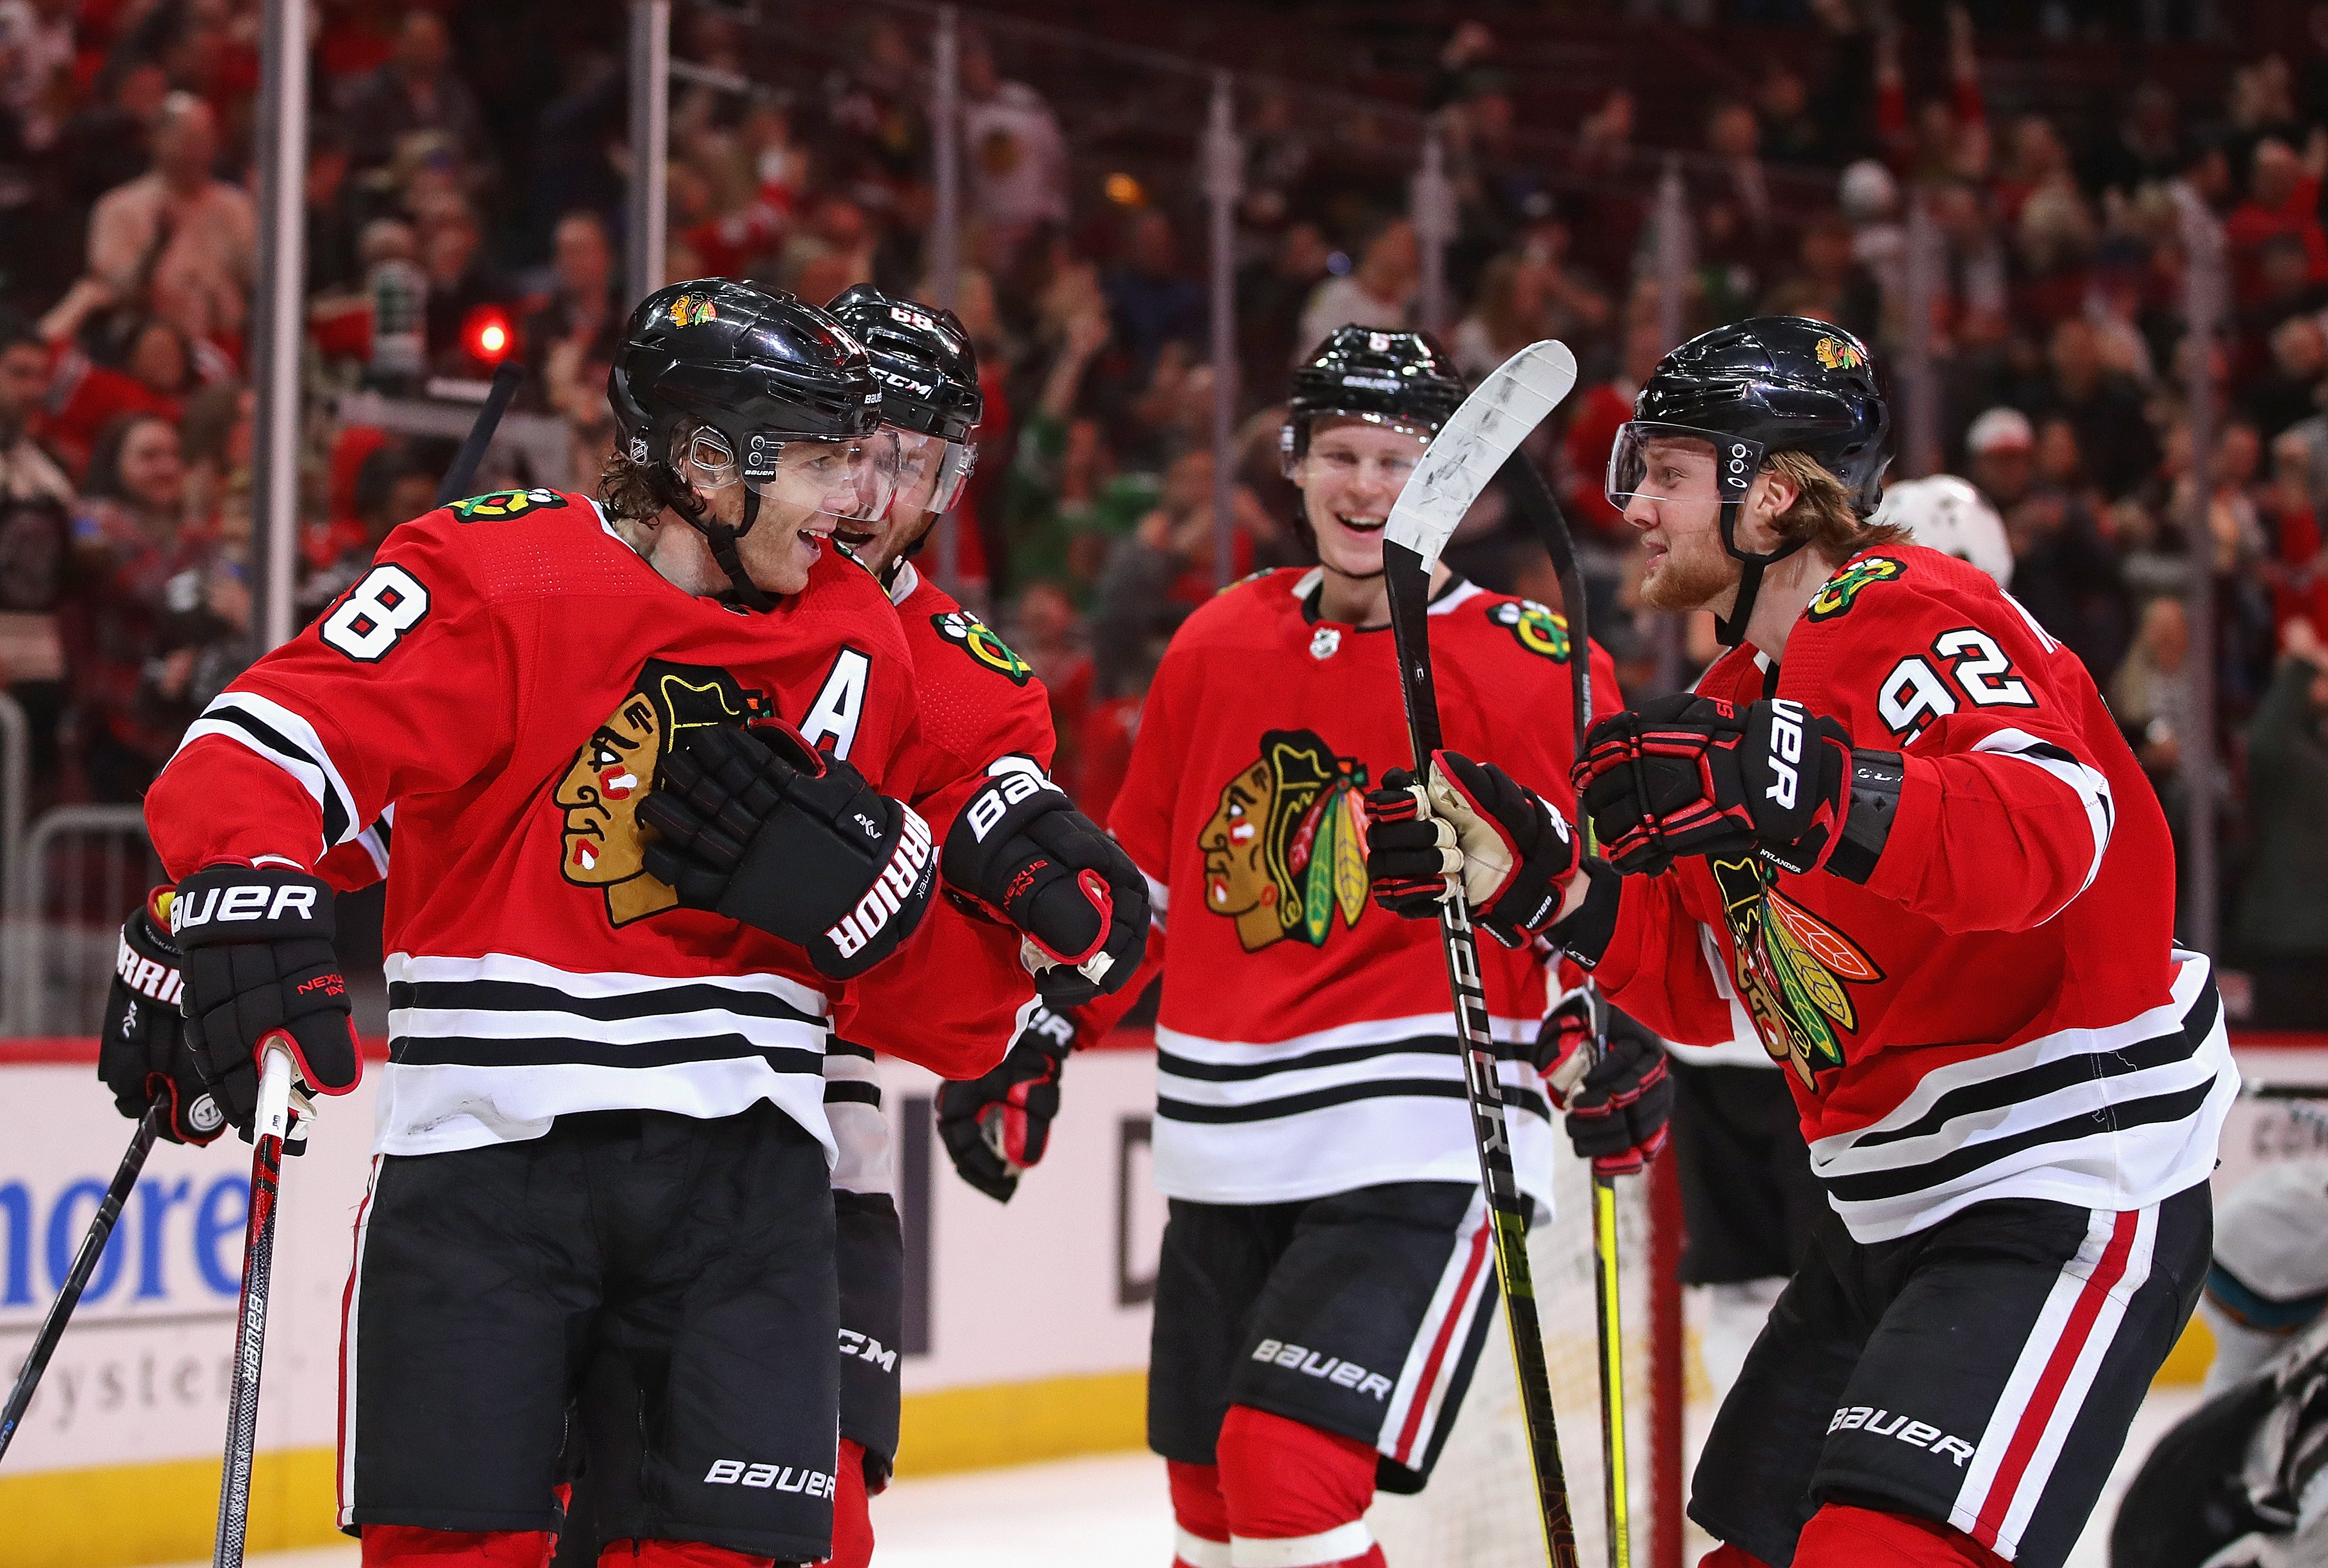 The Blackhawks would face the Oilers in a proposed 2020 playoff format.